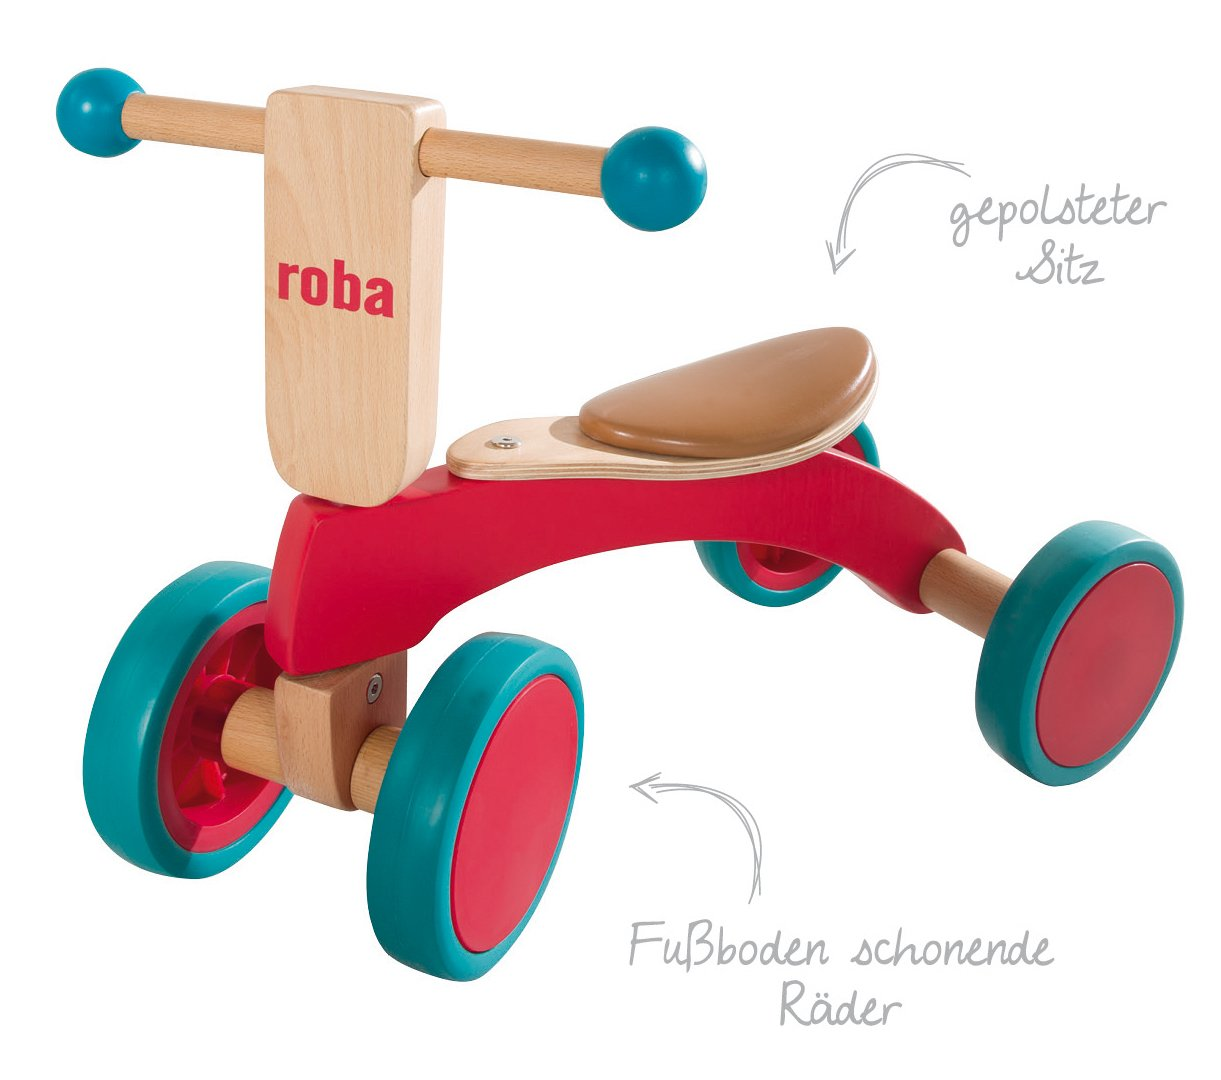 roba Wooden Vehicle for Toddlers from 1Year Old  This Roba wooden vehicle is the ideal learner's bicycle from toddlers of 12months and over to learn about balance and body coordination while having fun. The vehicle has a soft padded seat that is 22cm in height, and is suitable for children who are 80cm tall and over. The large coloured rubber tyres made from soft material (won't harm the floor) ensures a secure grip and is easy to move forward – for indoor and outdoor use. 2